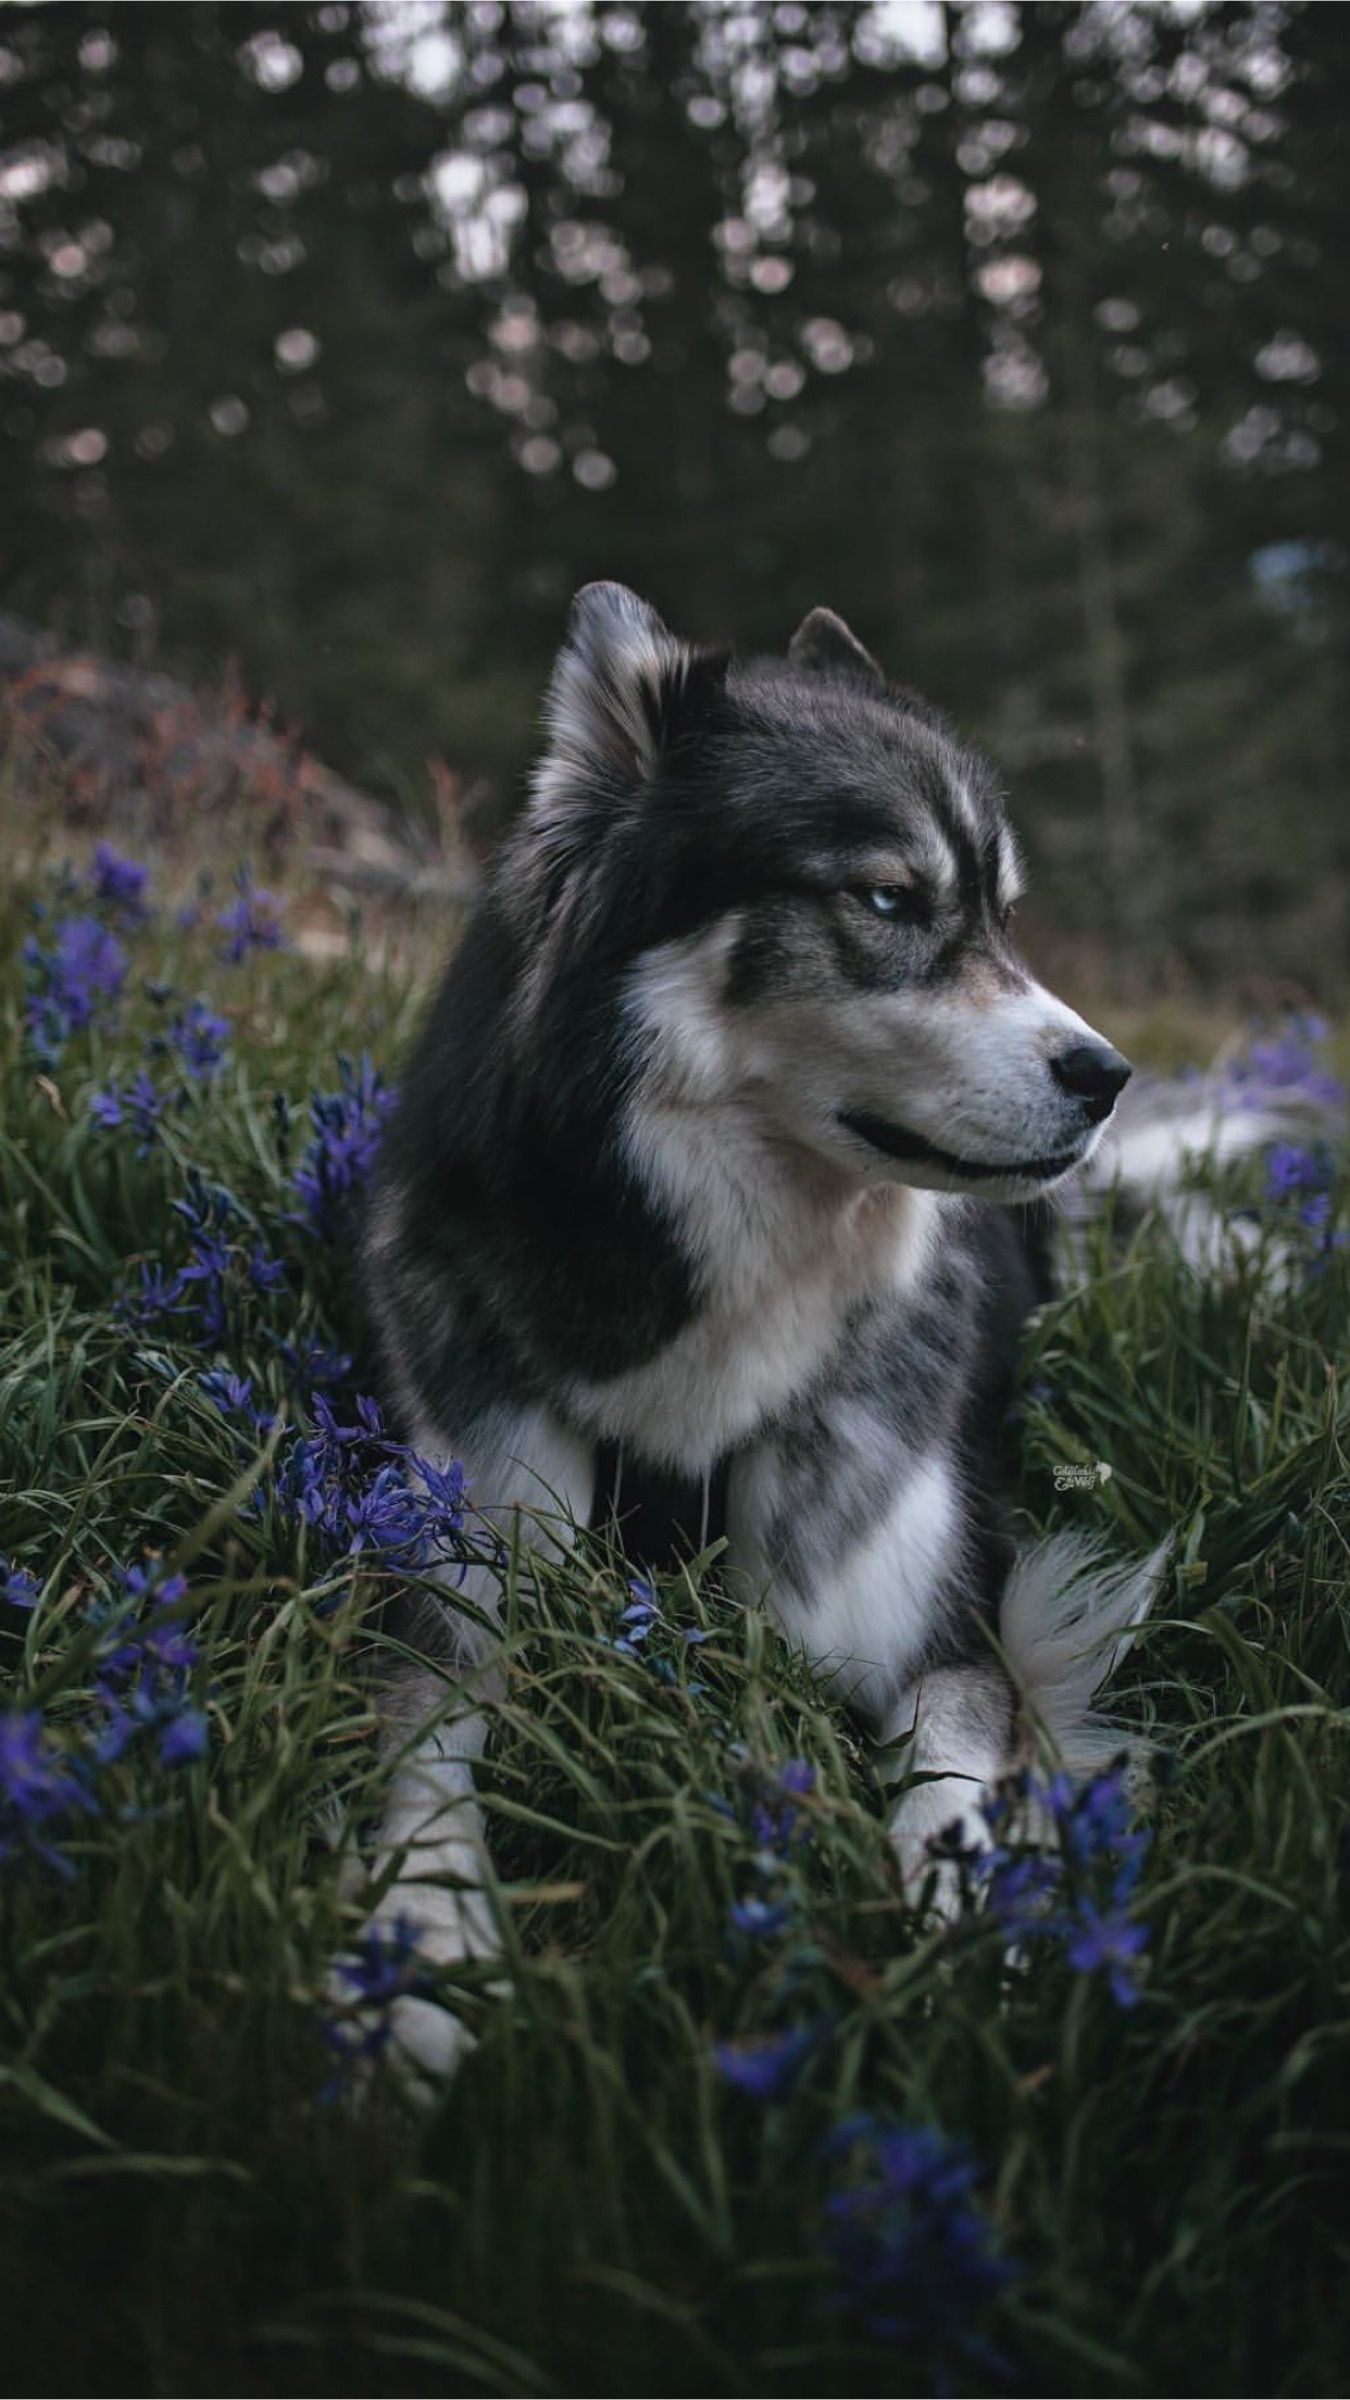 Pin by 𝕽𝖔𝖘𝖊𝖒𝖊𝖗𝔶 on Dogs Dogs, Animals, Husky